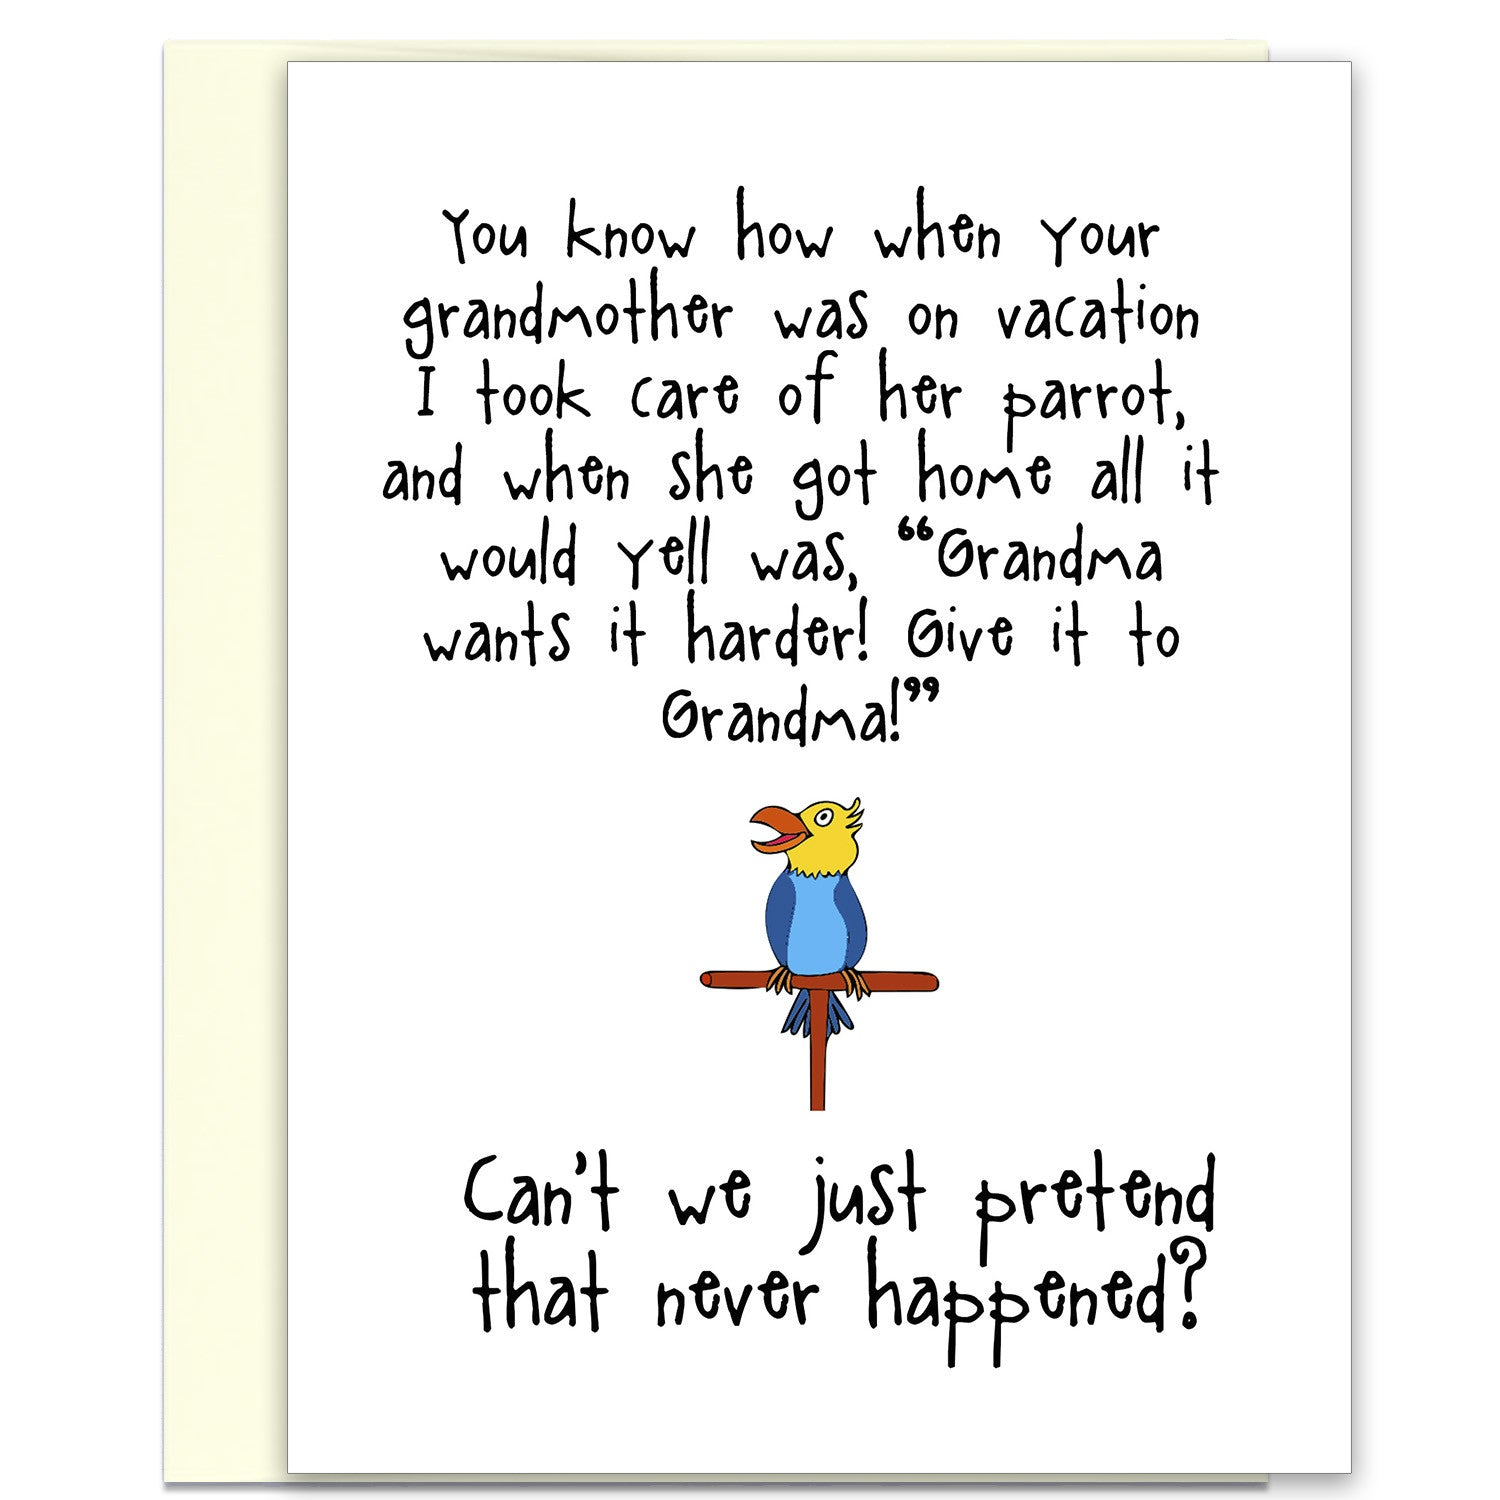 e57f1679e Give it to Grandma - A Silly Relationship Greeting Card for Friends -  KatMariacaStudio - 1 ...